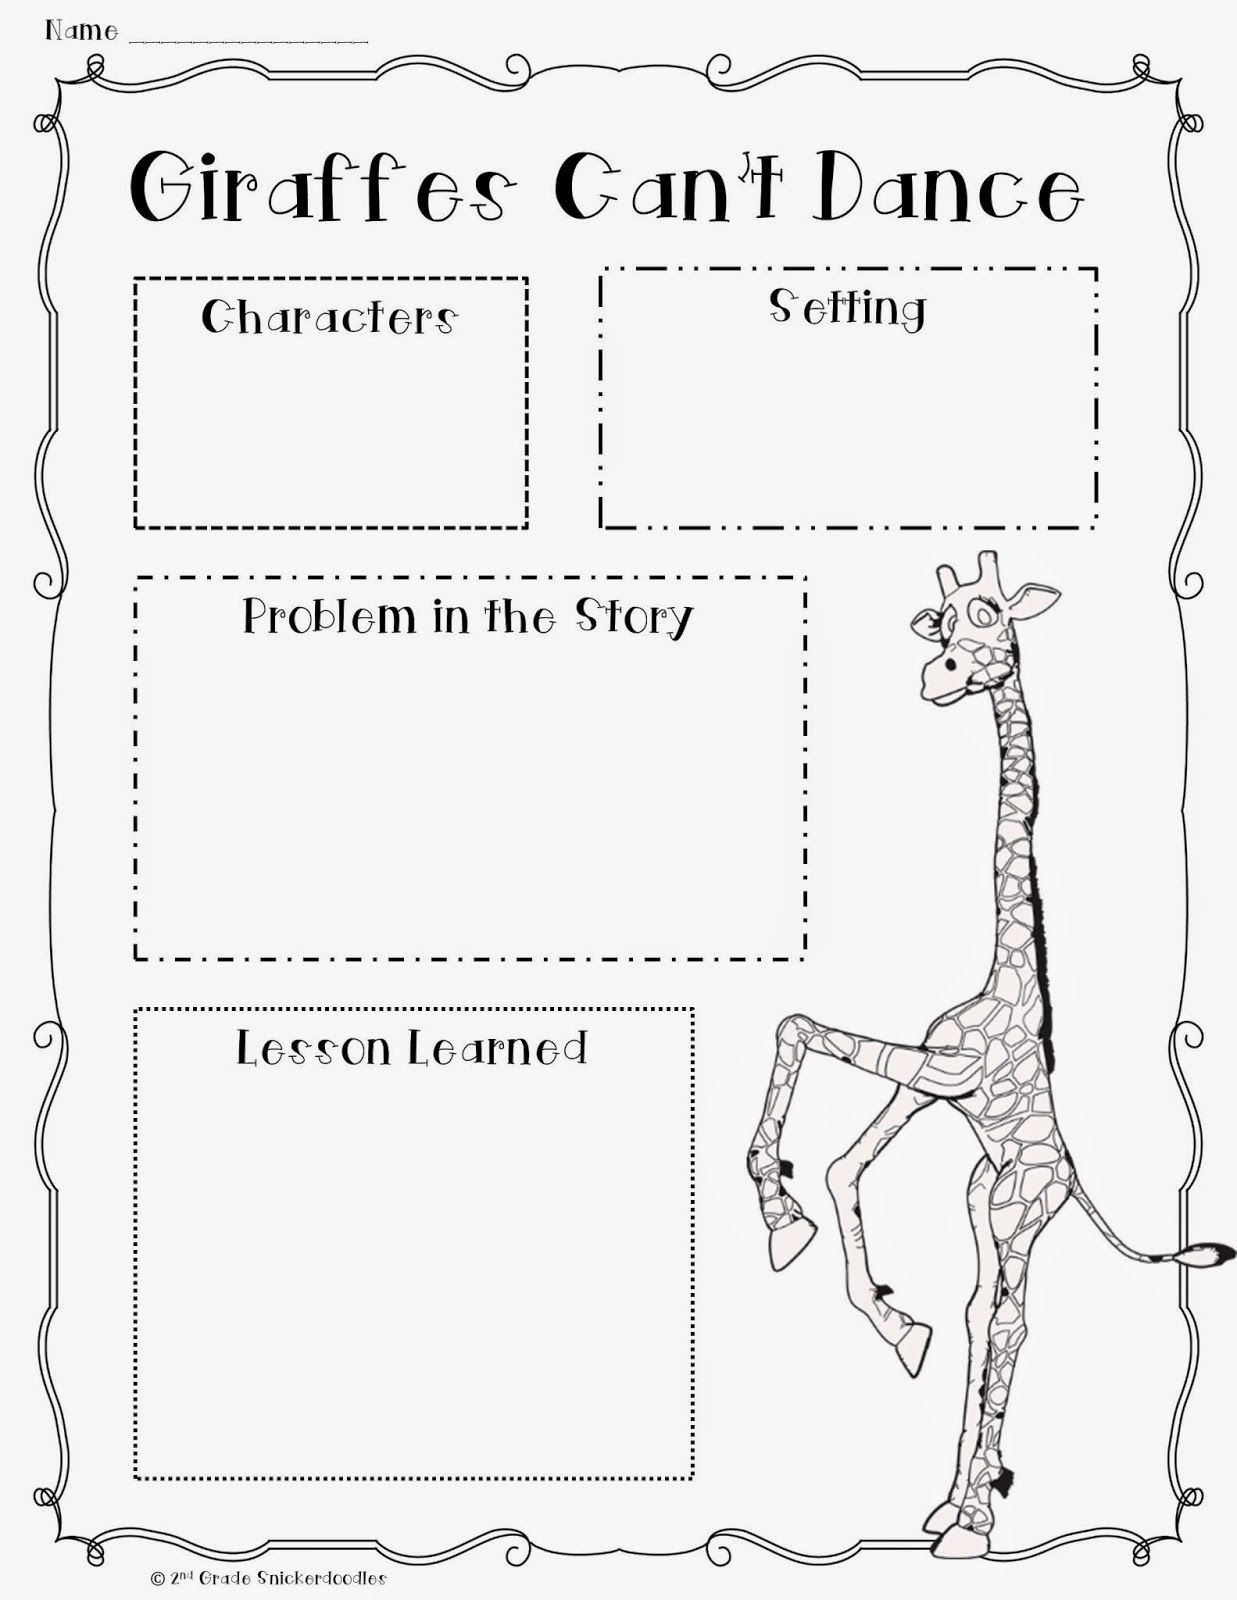 worksheet Character Traits Worksheet 2nd Grade 2nd grade snickerdoodles giraffes cant dance book chat with a freebie